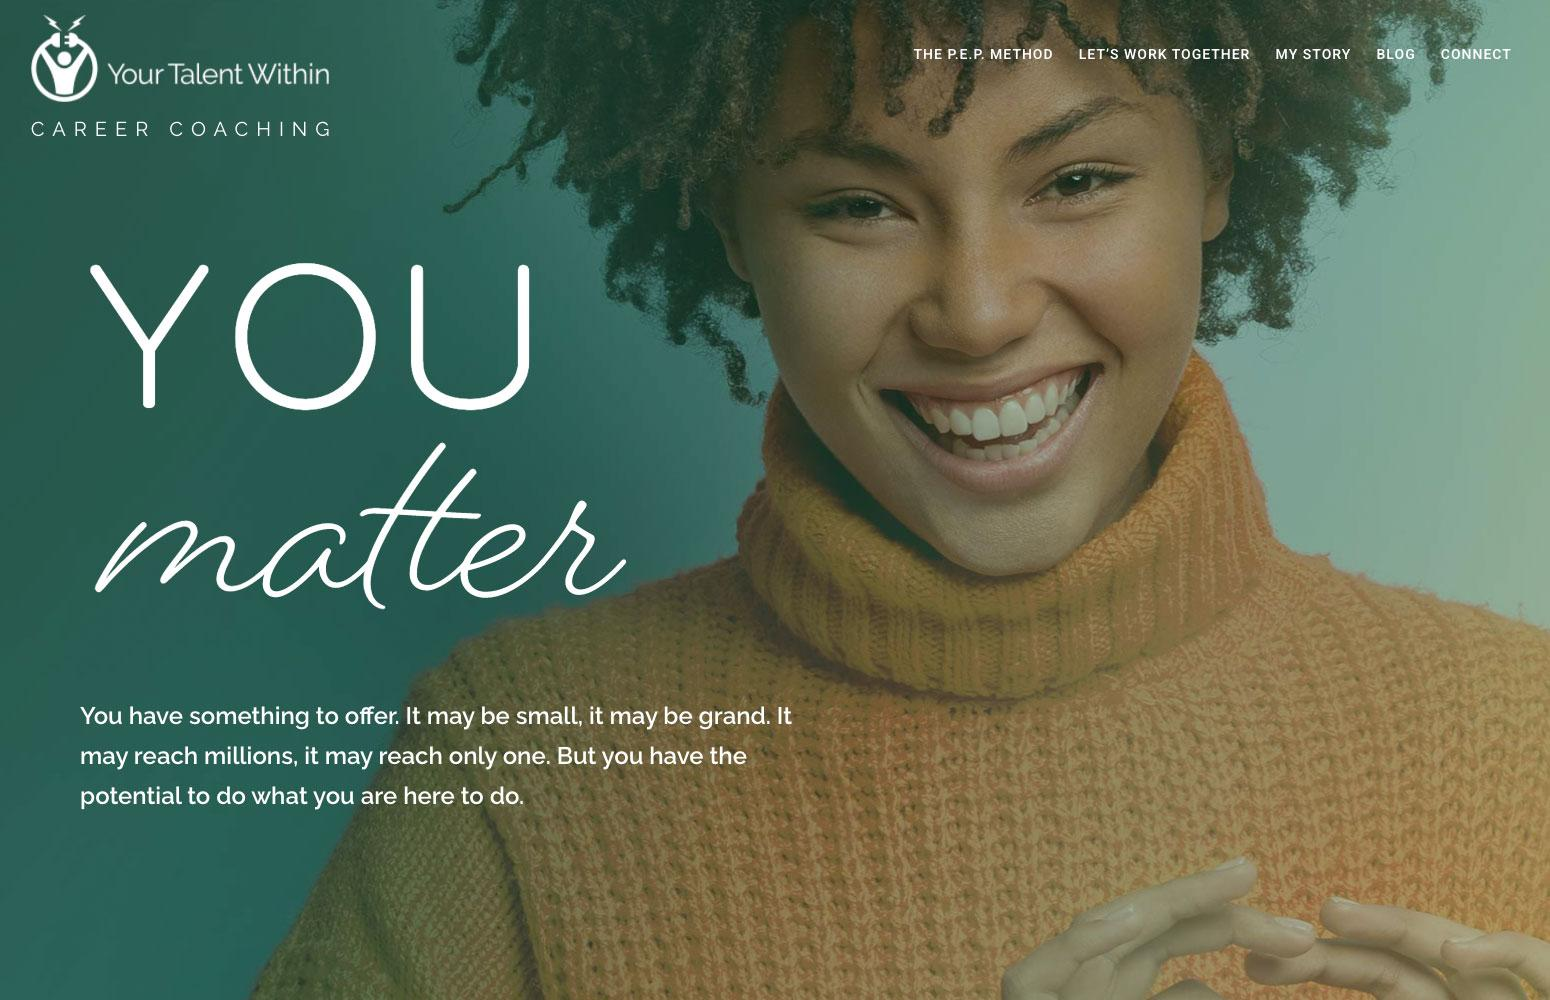 your-talent-within-wordpress-website-slider-image-woman-1